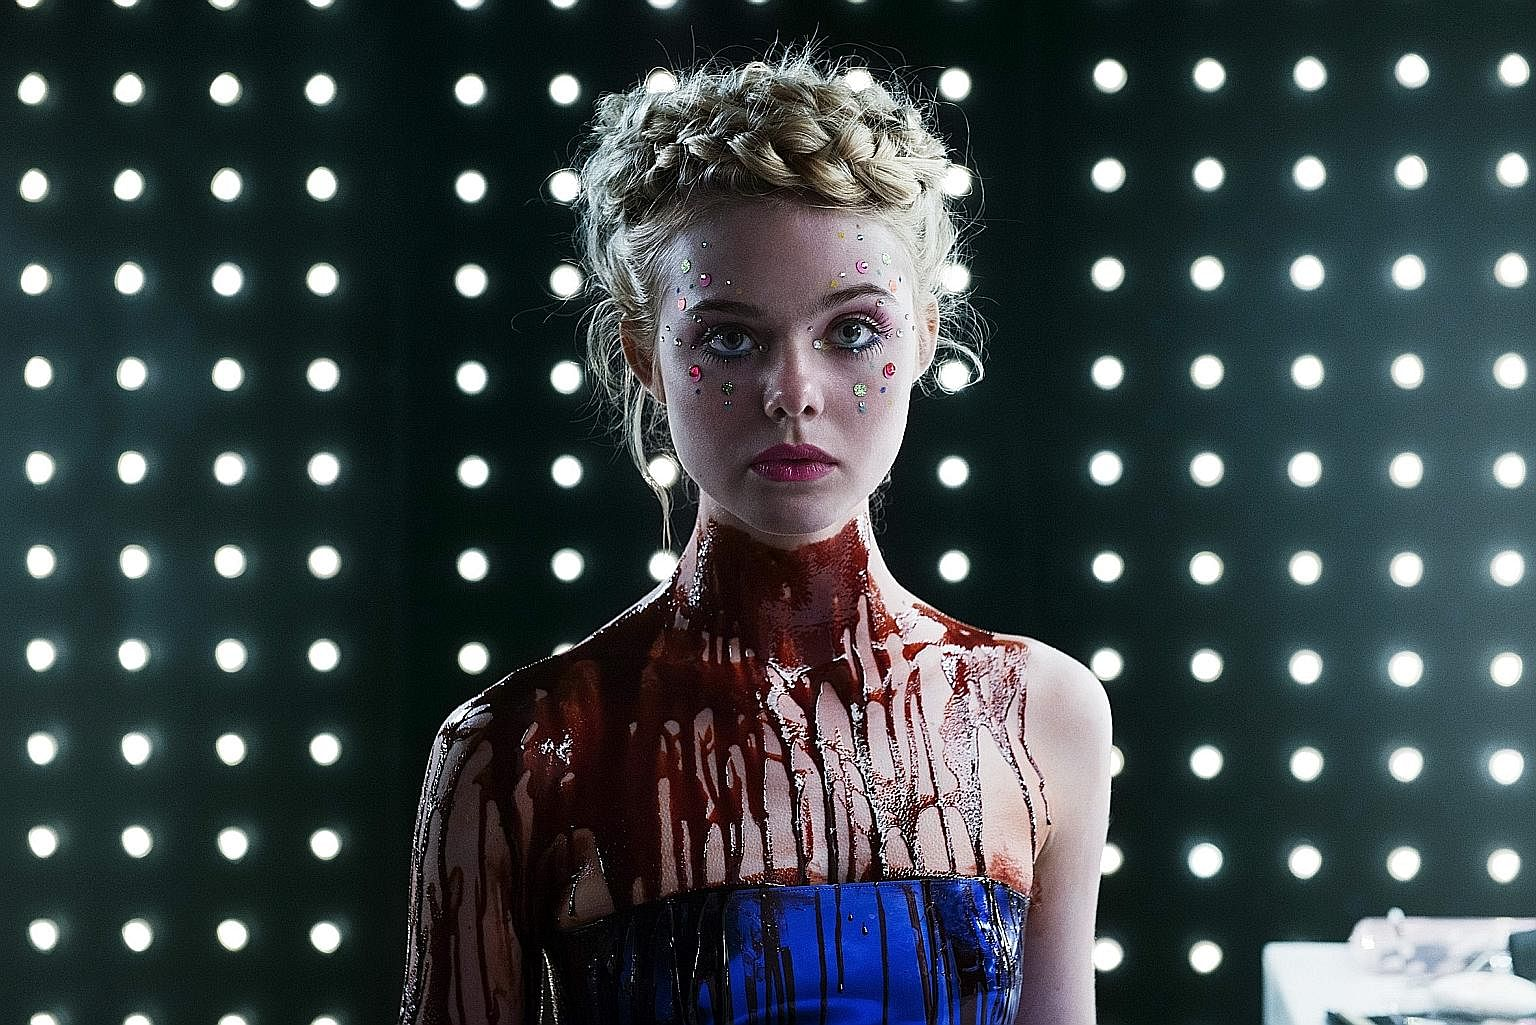 Elle Fanning (left) plays a model with otherworldly beauty in The Neon Demon.